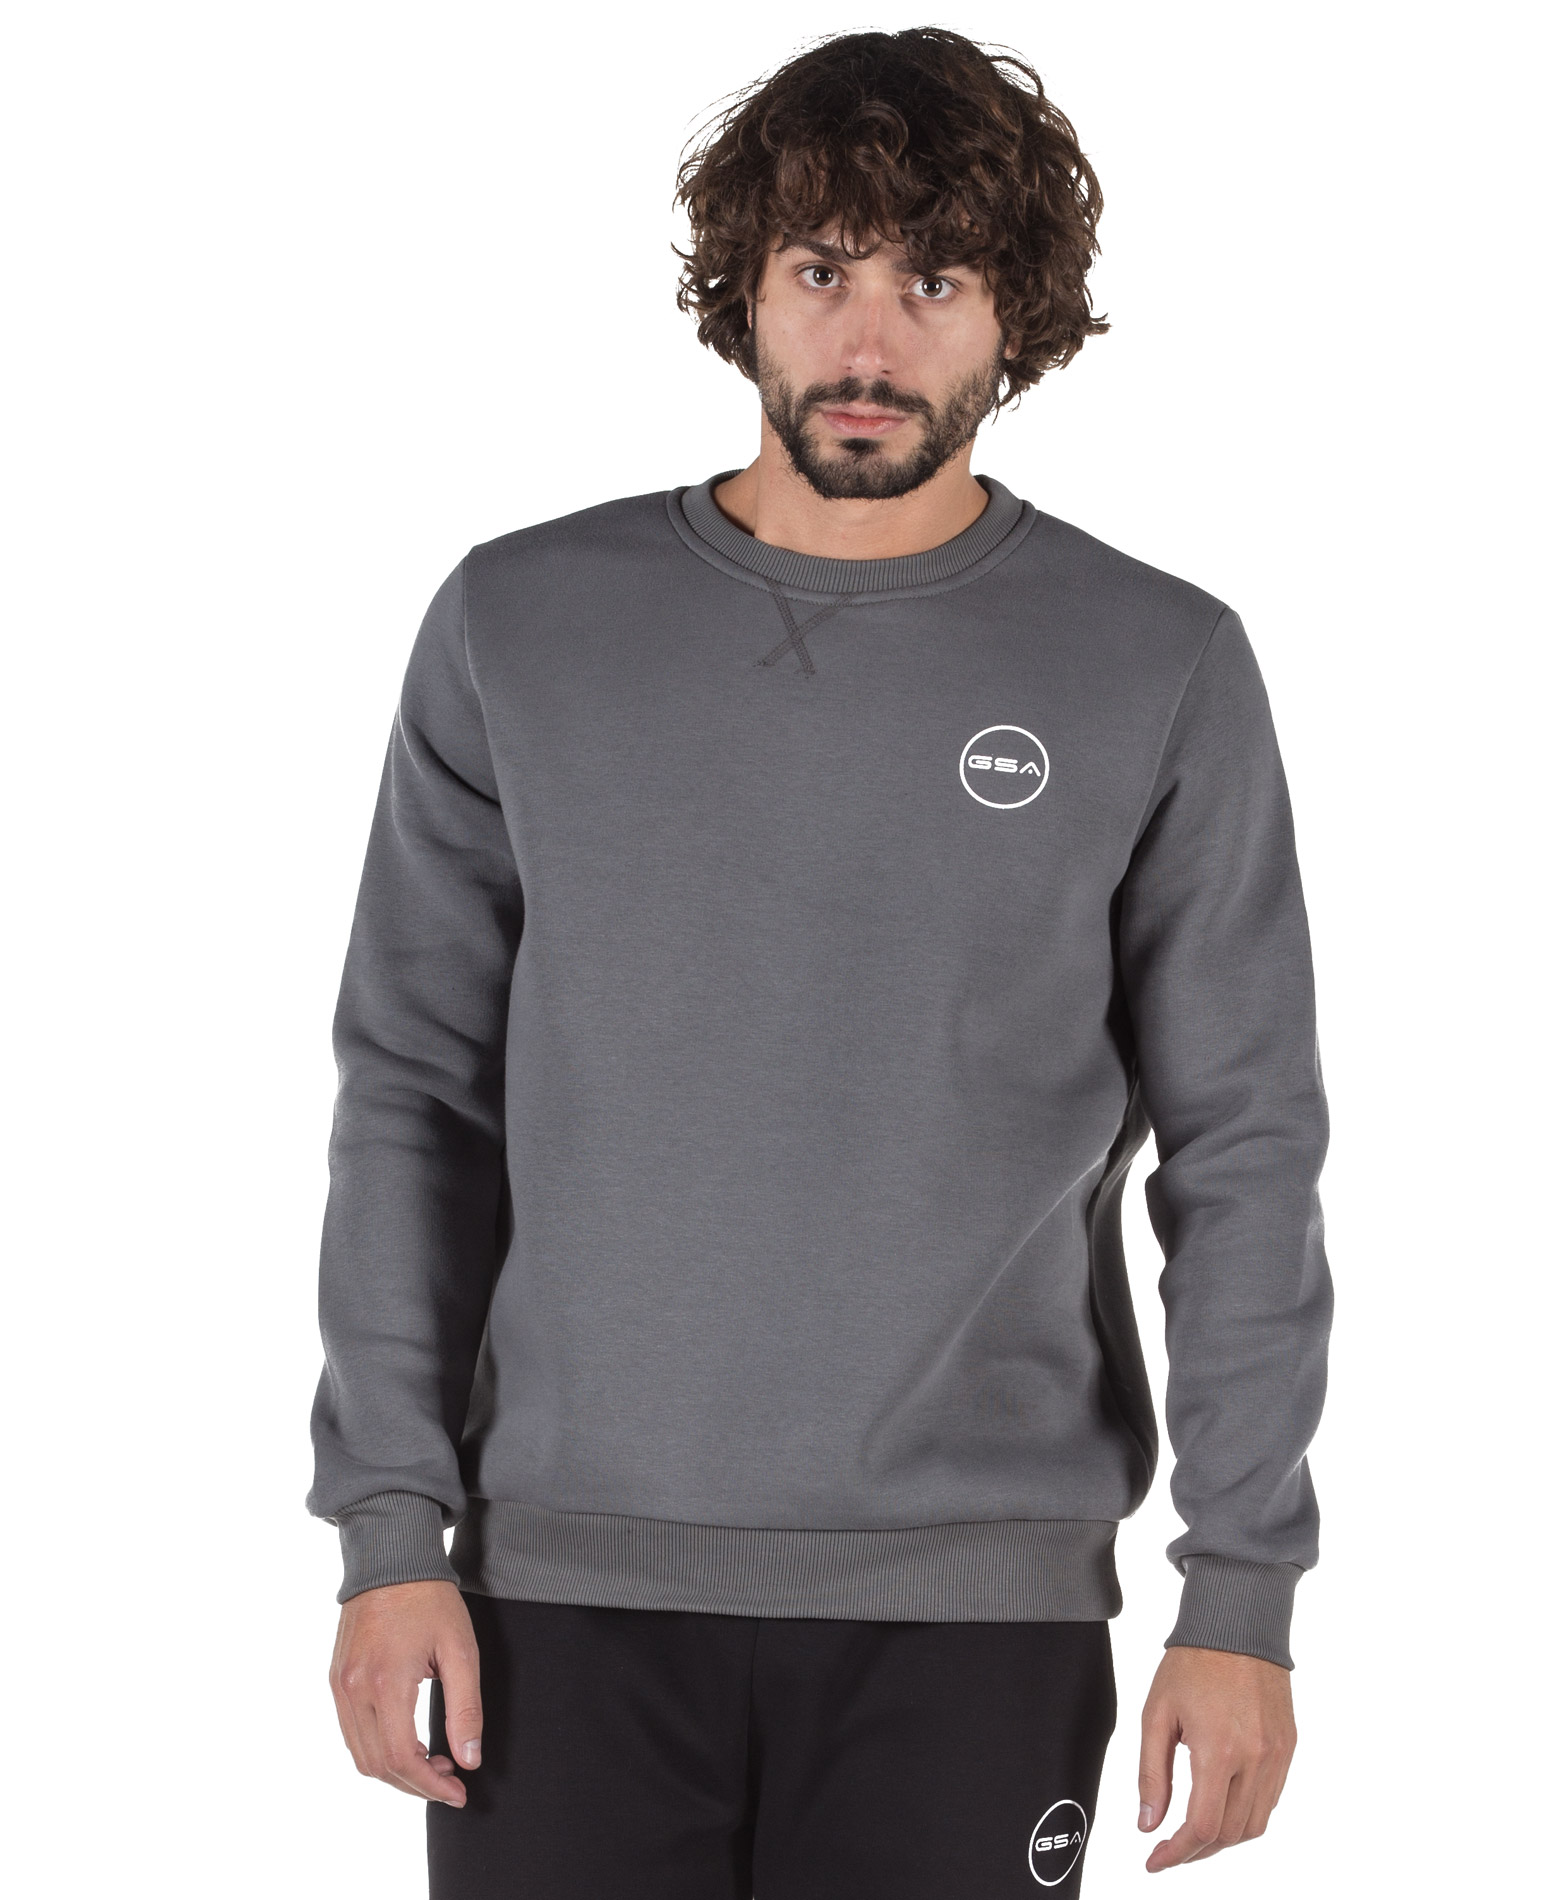 GSA SUPERCOTTON LONG SLEEVE CREW NECK 17-17025-06 CHARCOAL Ανθρακί